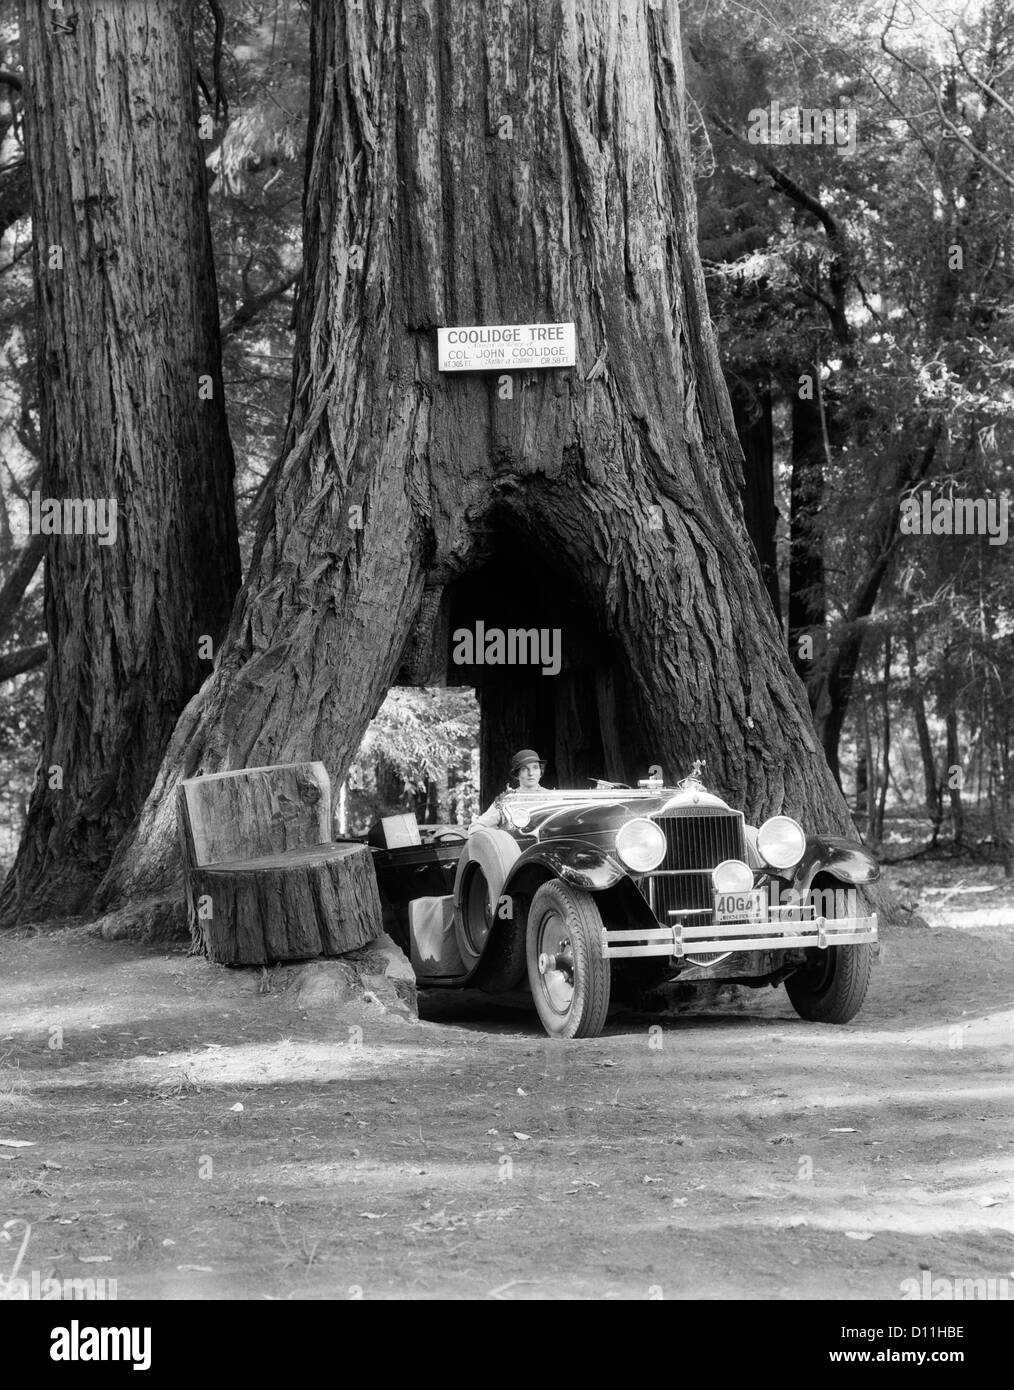 1930s WOMAN DRIVING CONVERTIBLE CAR THROUGH OPENING IN GIANT SEQUOIA TREE TRUNK COOLIDGE TREE MENDOCINO CALIFORNIA - Stock Image